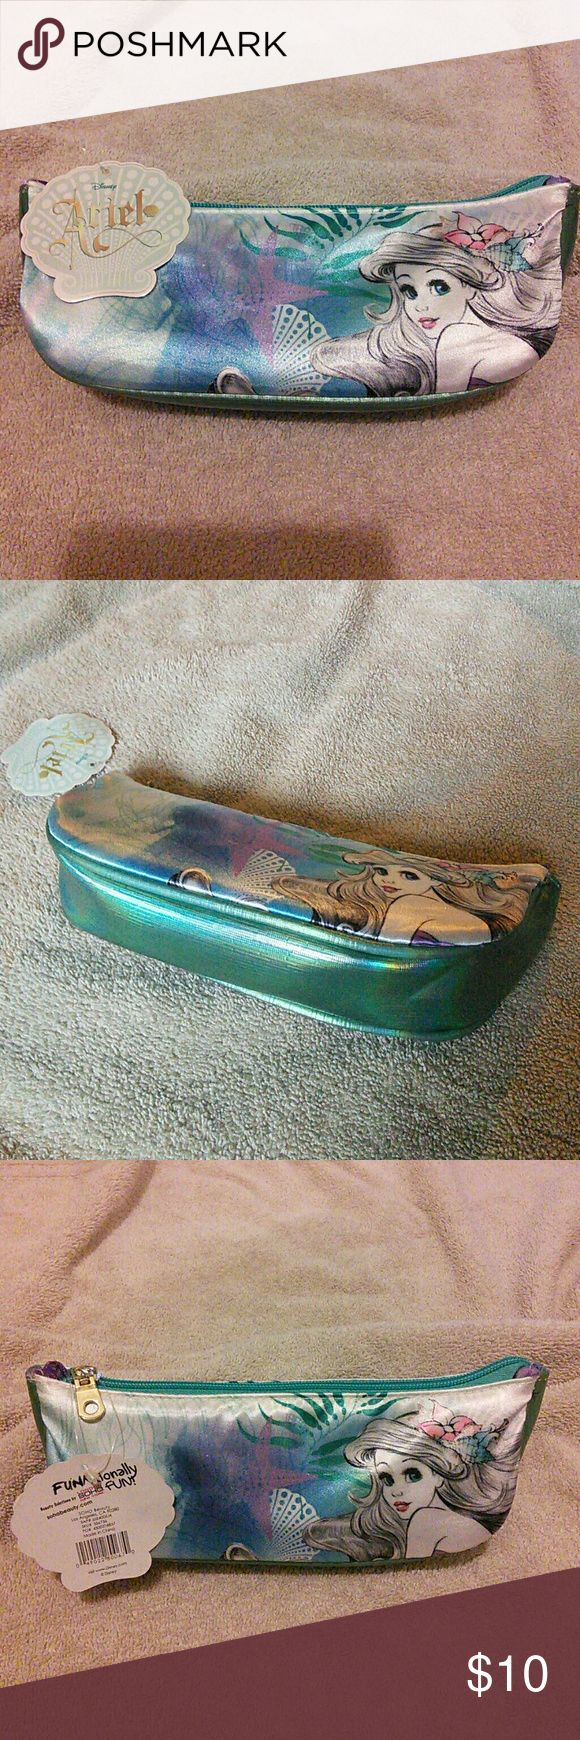 Ariel make up bag Little Mermaid Ariel make up bag, same picture on both sides, bottom is iridescent teal, purple seashell lining Bags